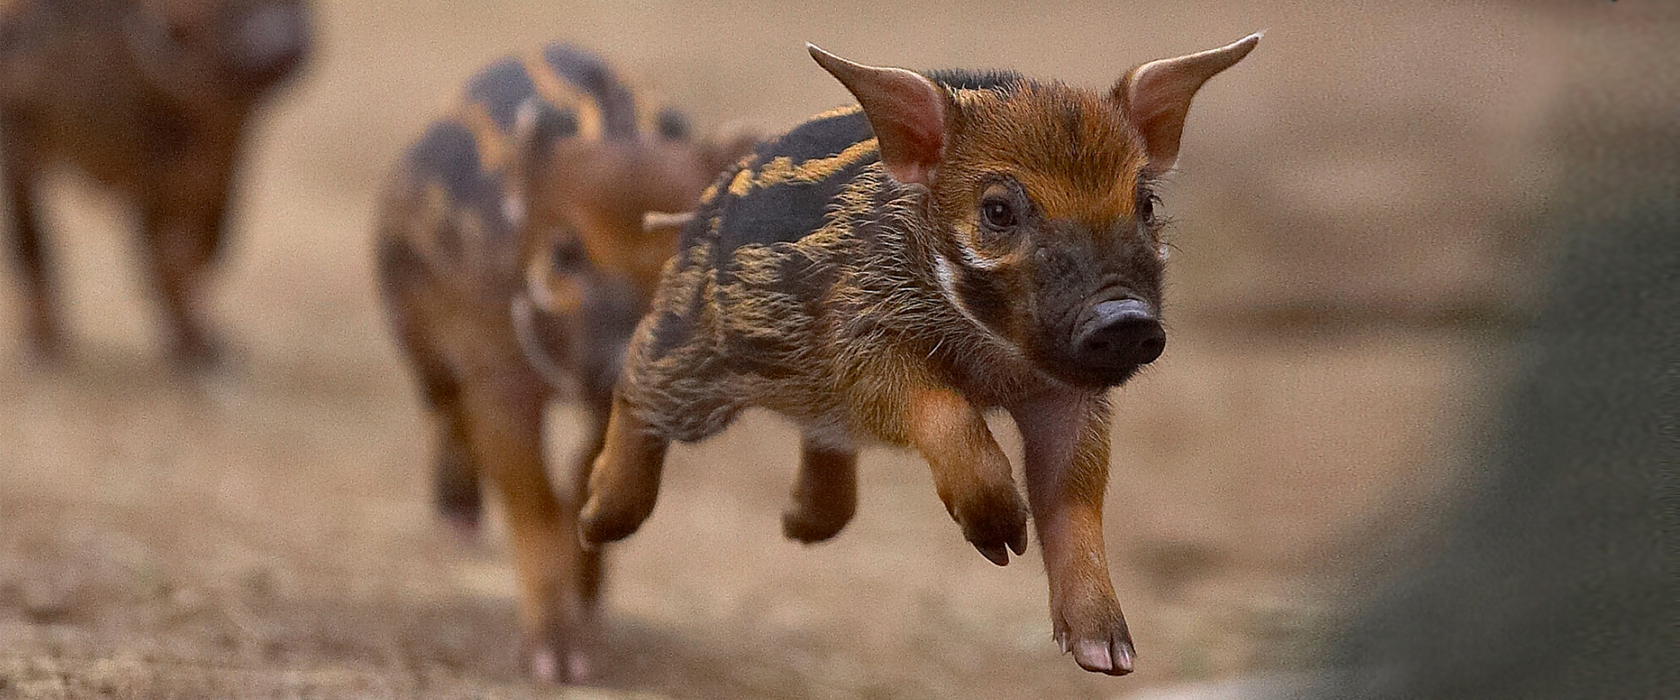 Flying Piglets